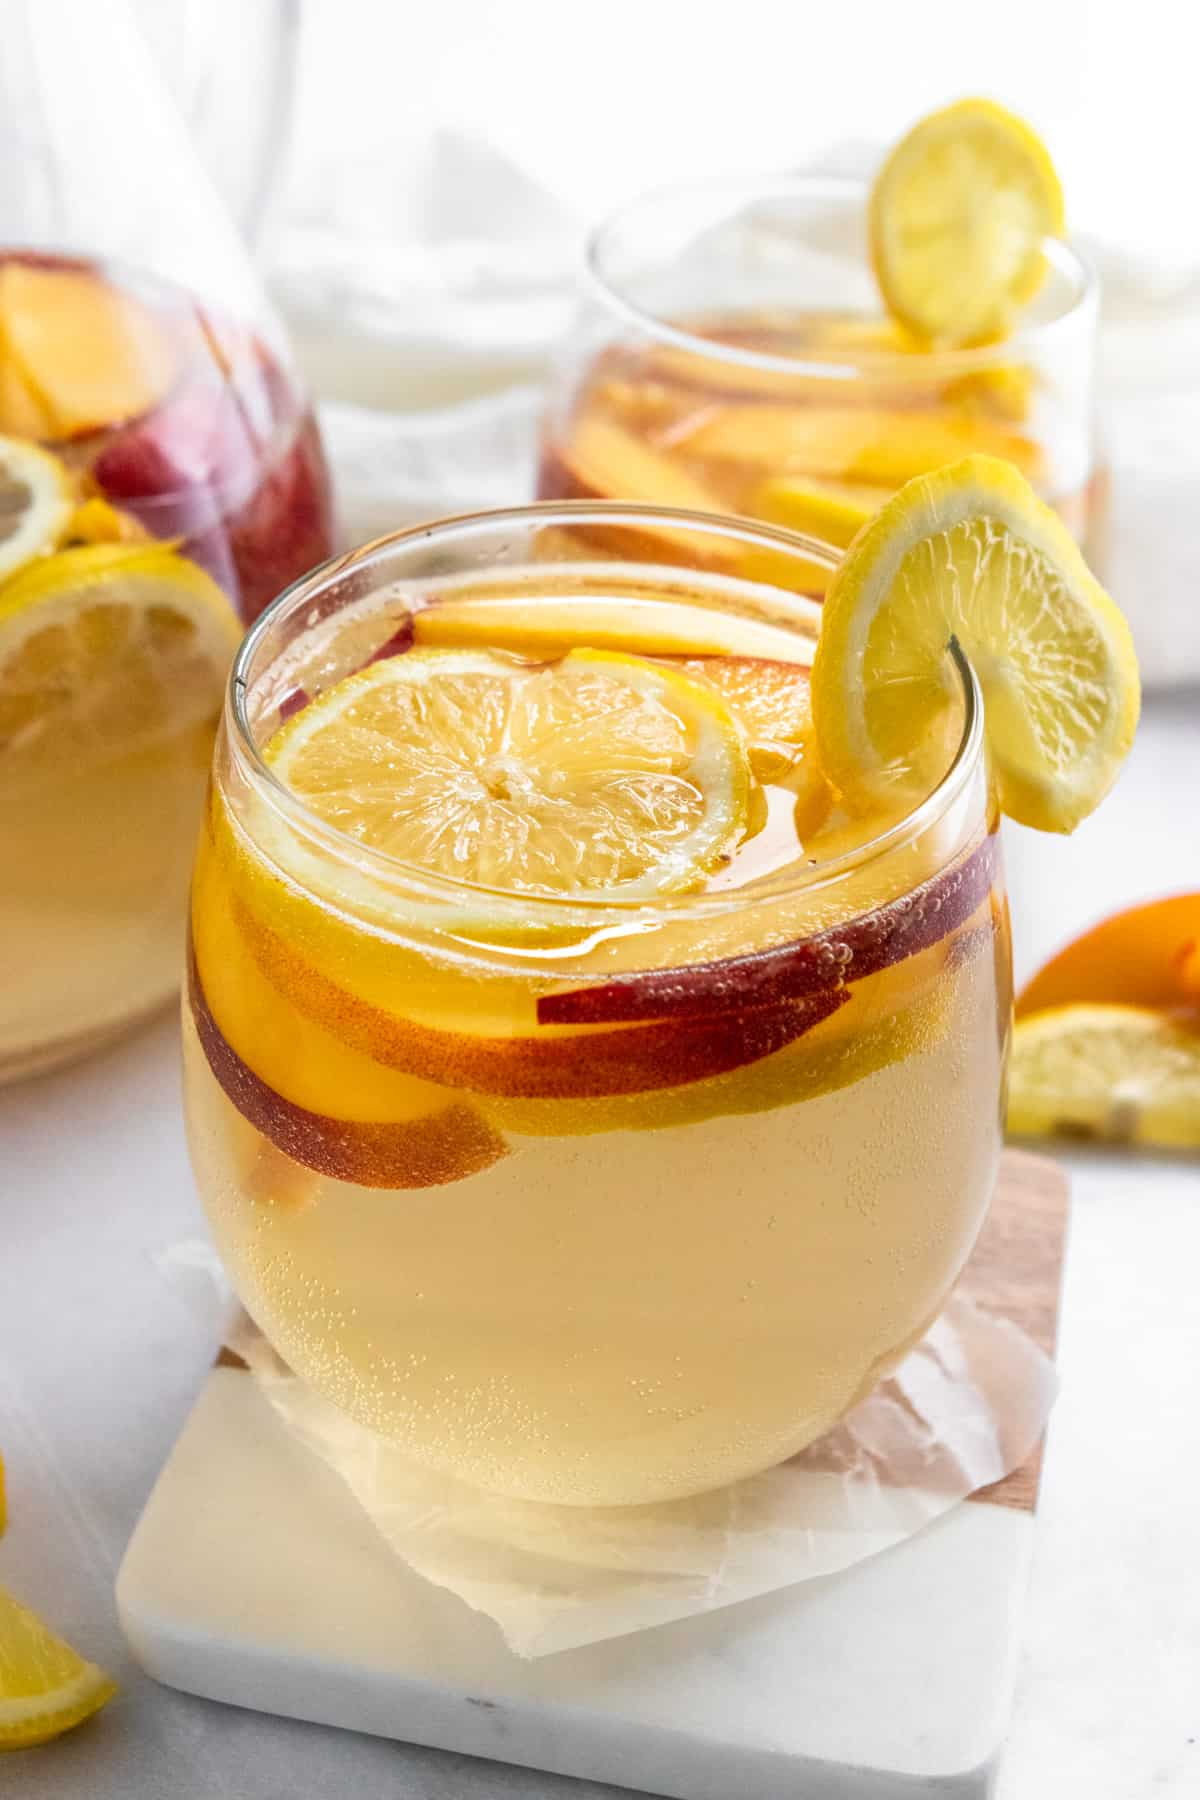 Ginger peach white sangria in glass with lemon slice on coaster.